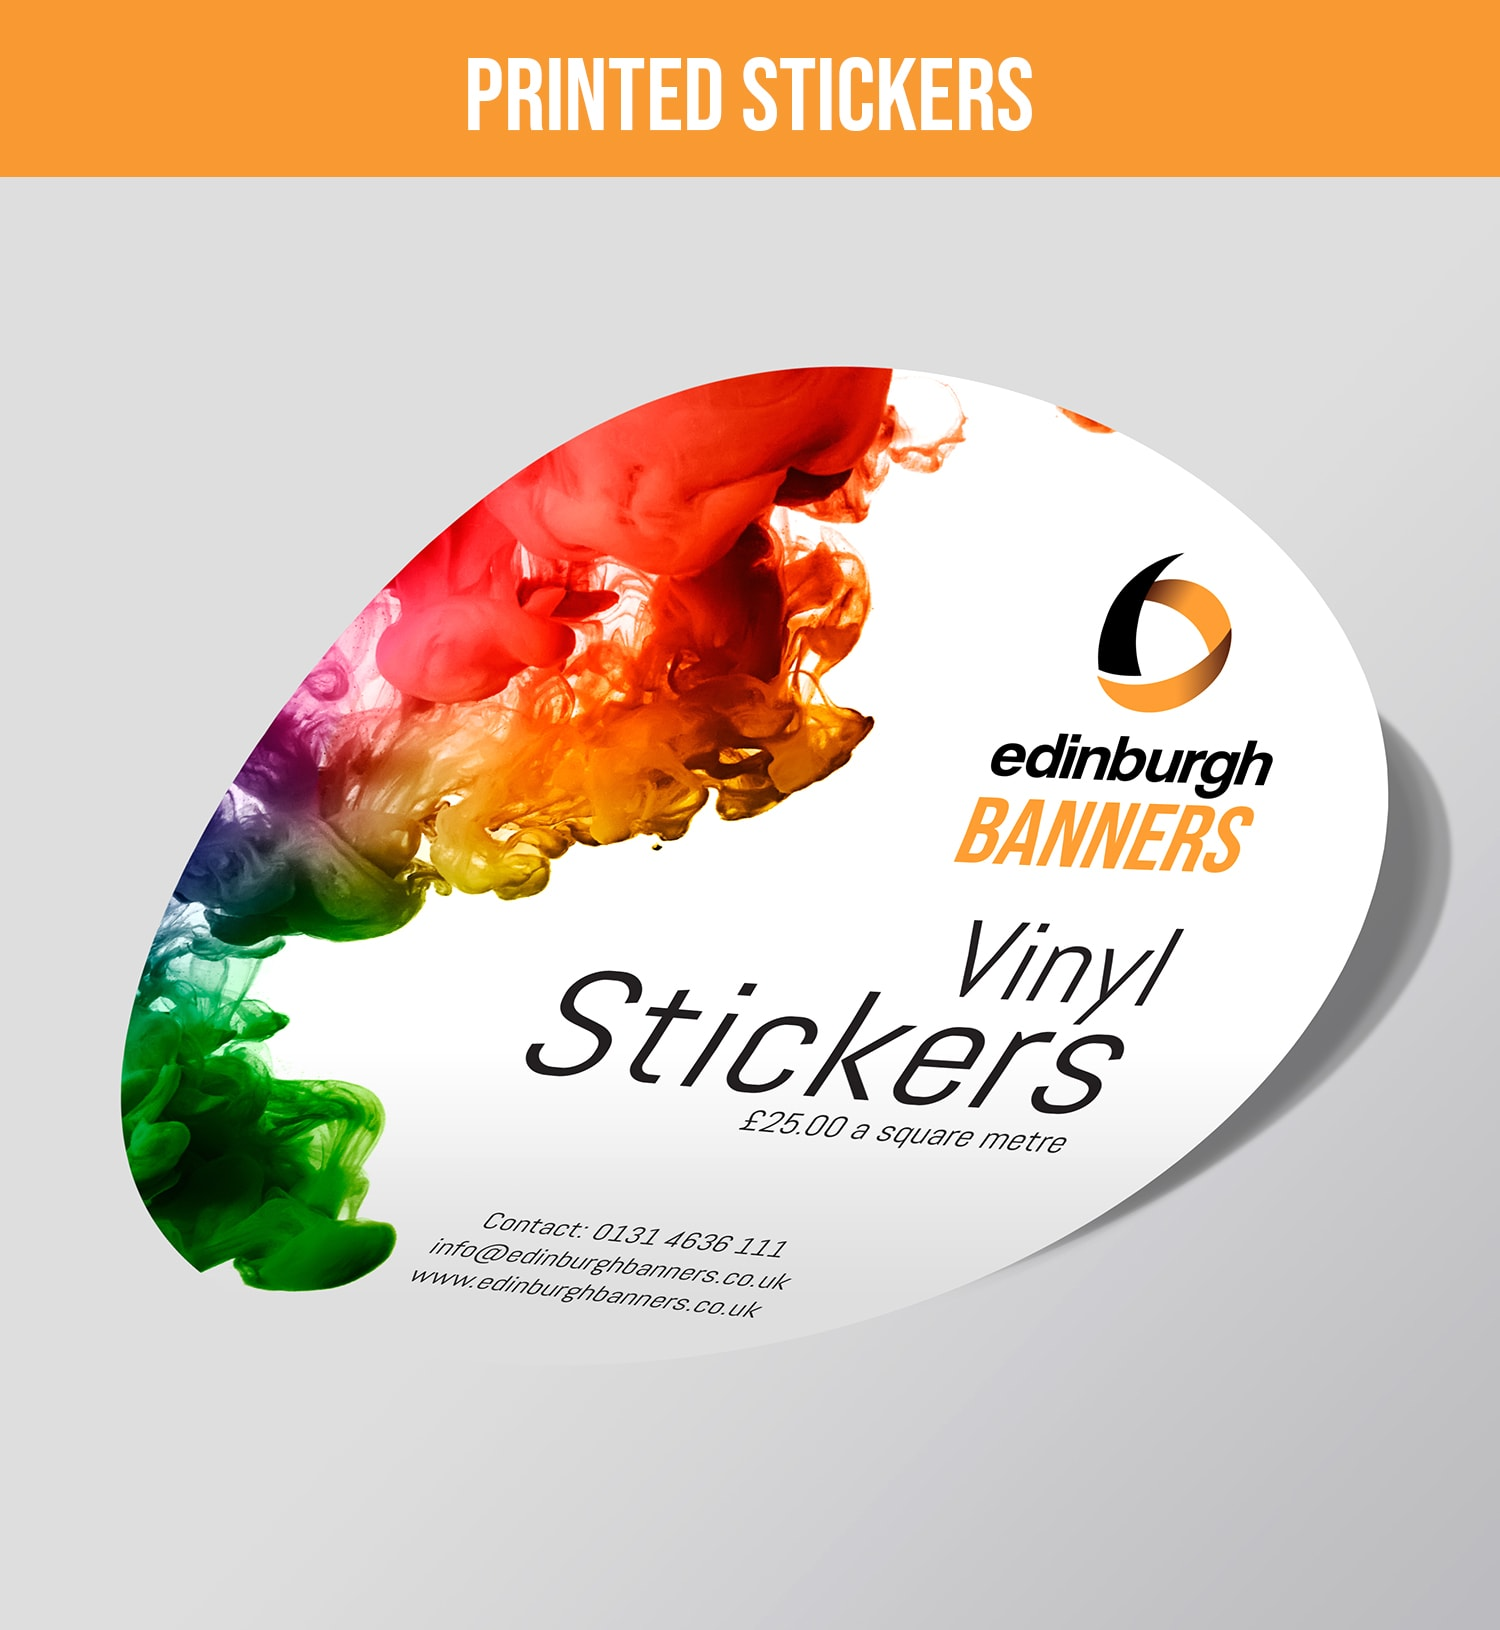 Edinburgh Banners Printed Stickers